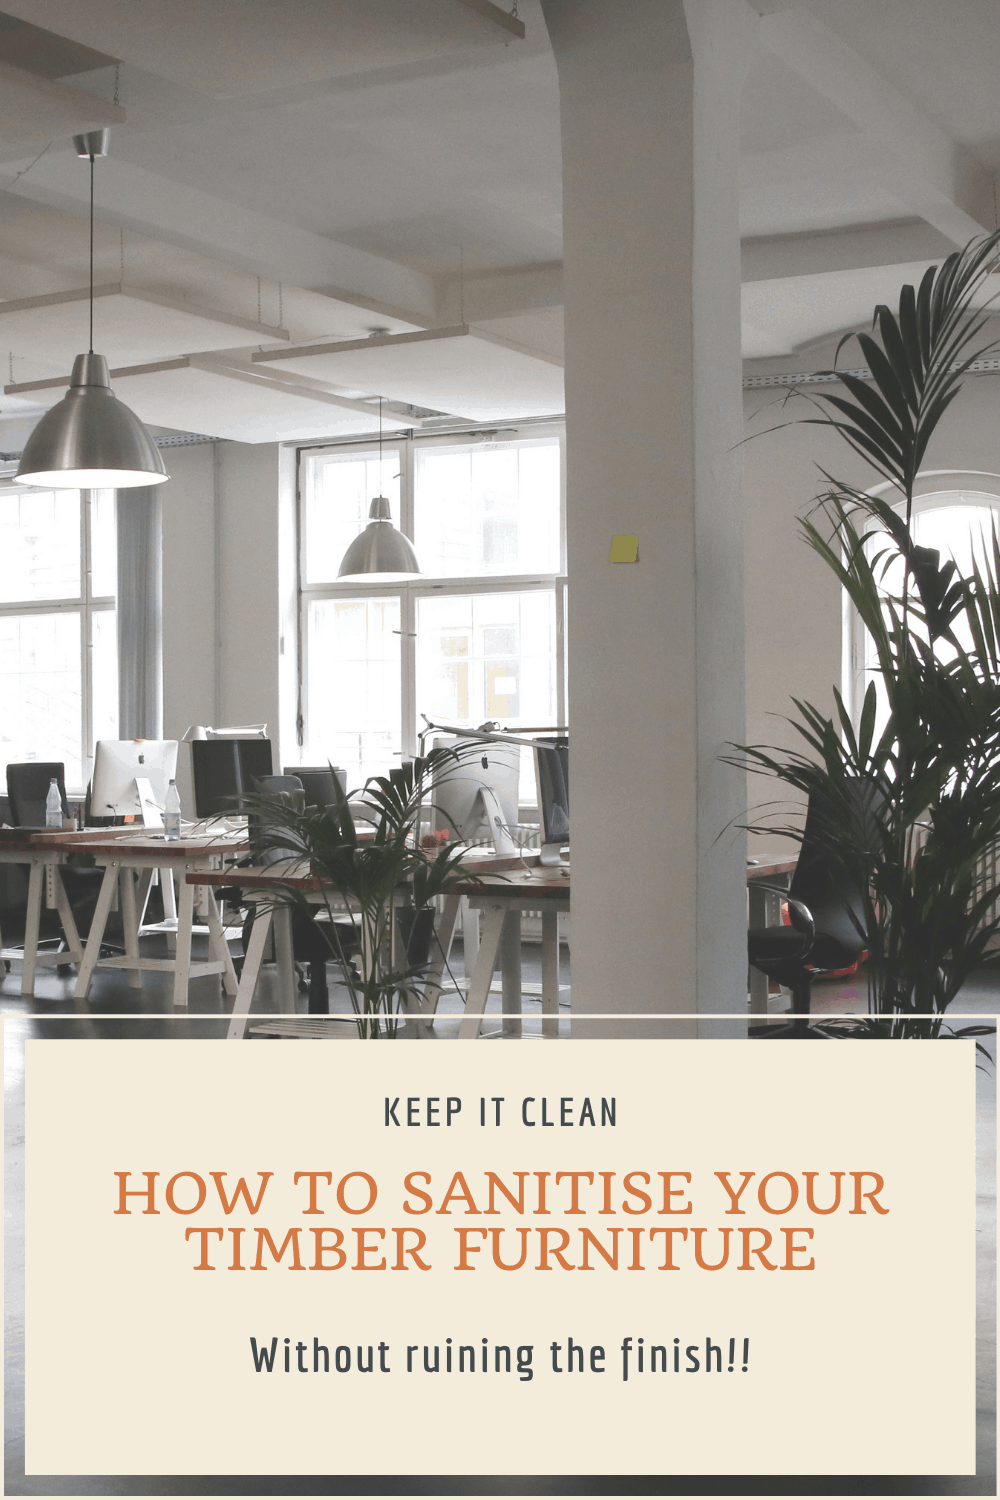 How to sanitise timber furniture